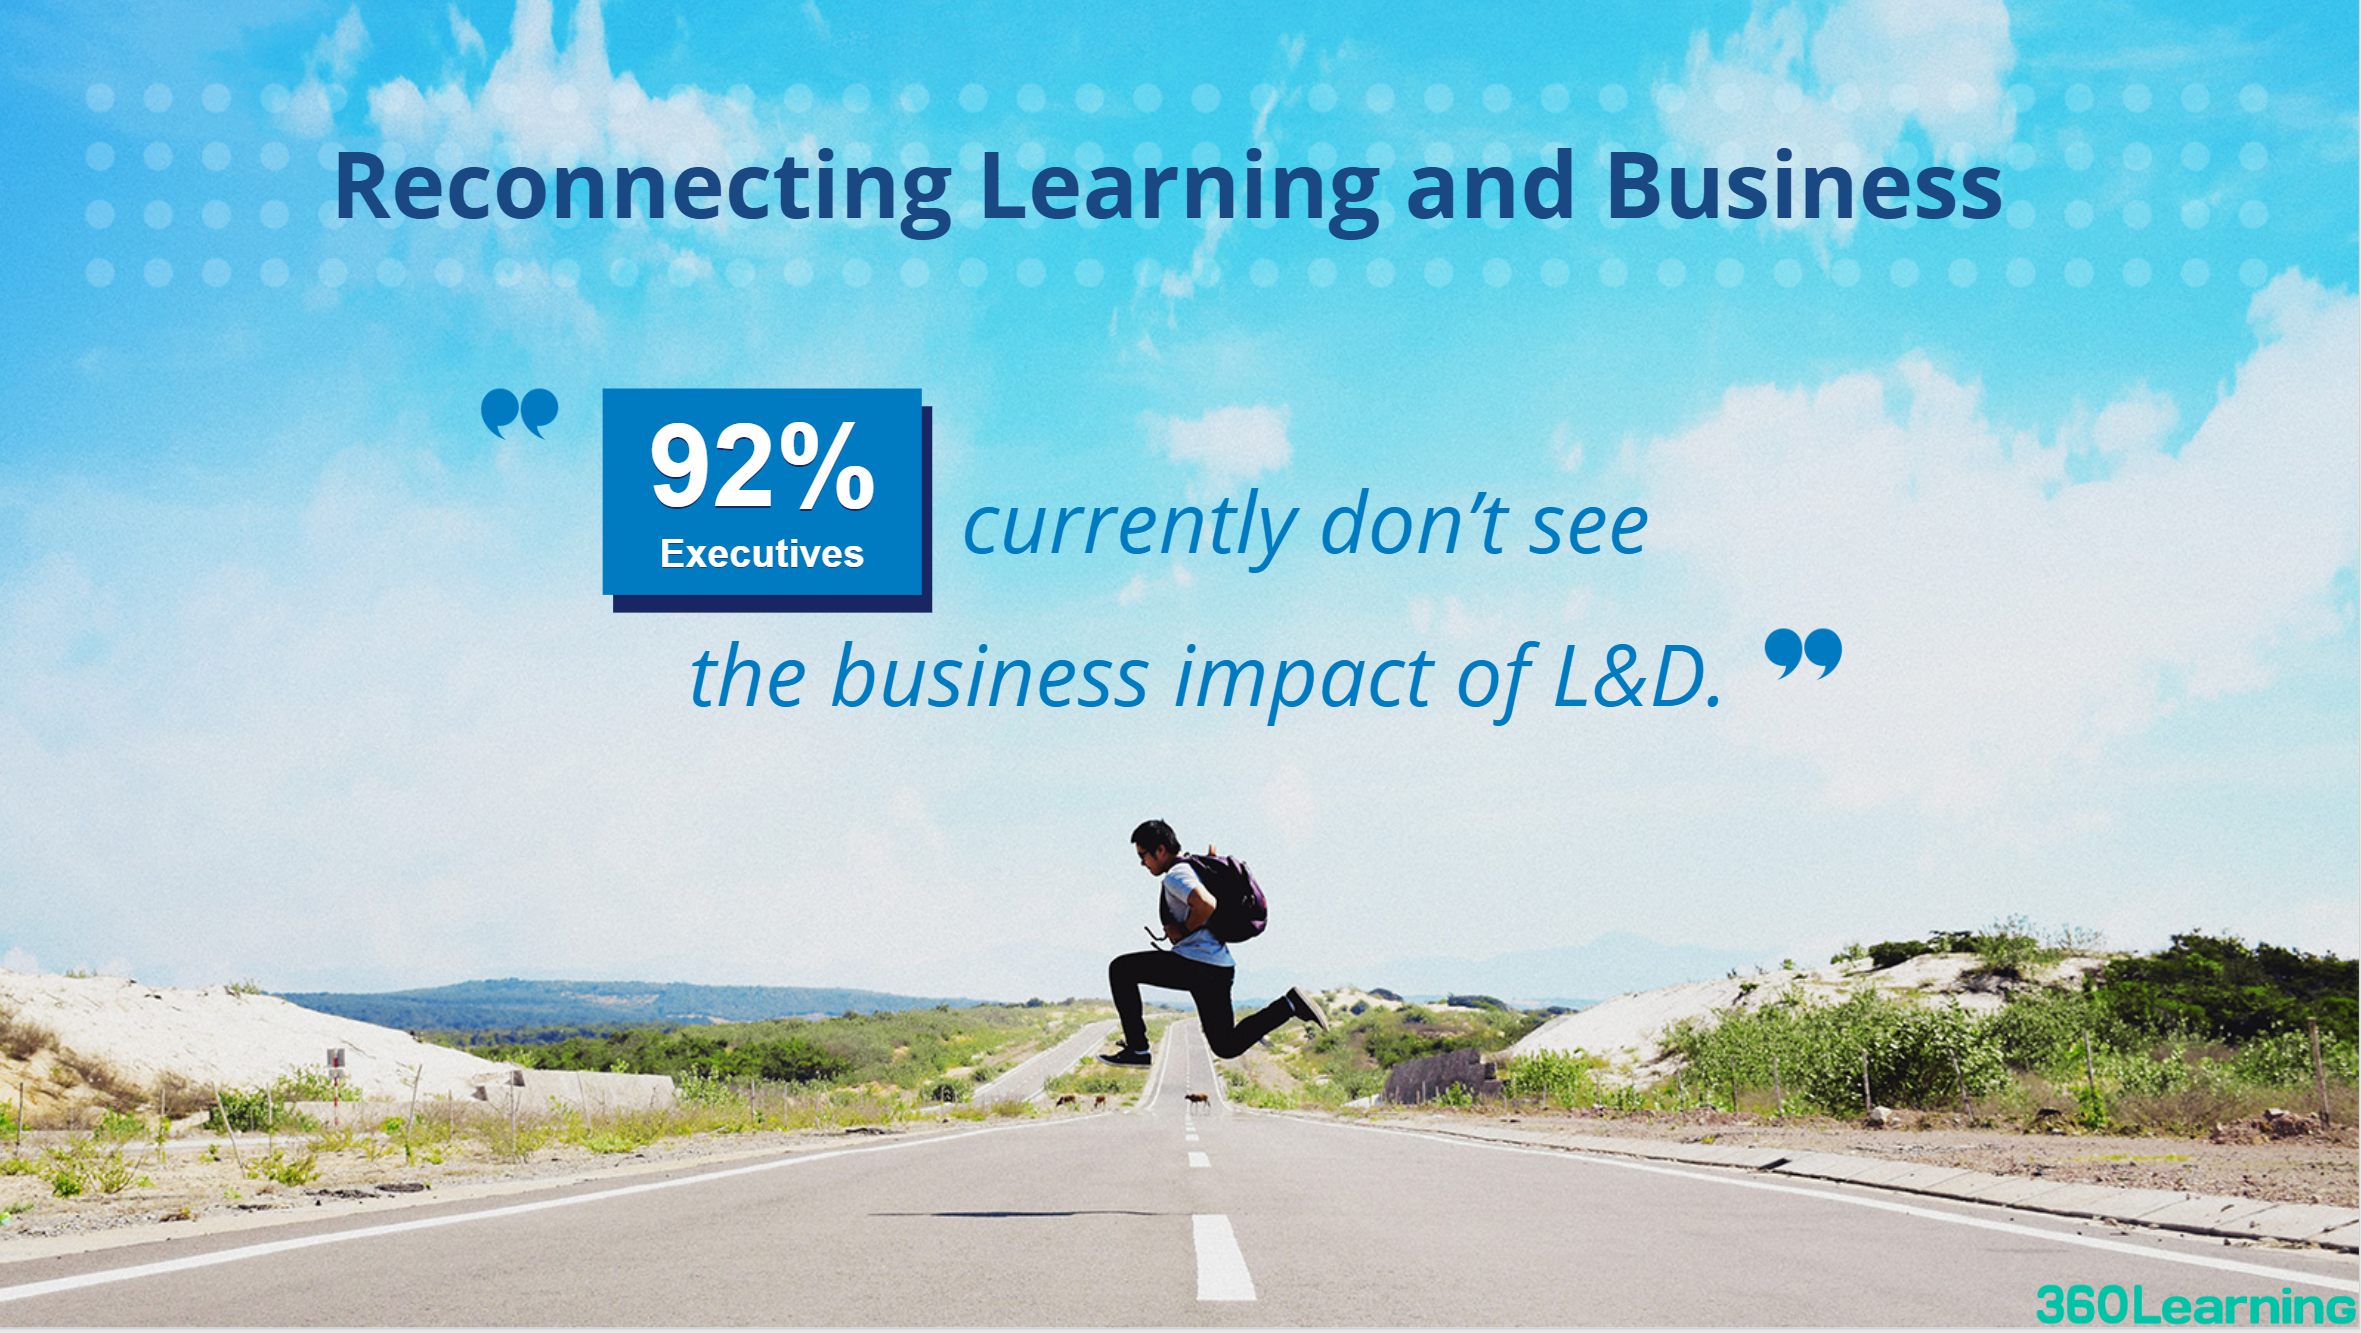 DOWNLOAD THE EBOOK BY CLICKING ON THE FOLLOWING LINK    https://en.360learning.com/ebook-9-major-us-organizations-are-bridging-the-gap-between-learning-and-business